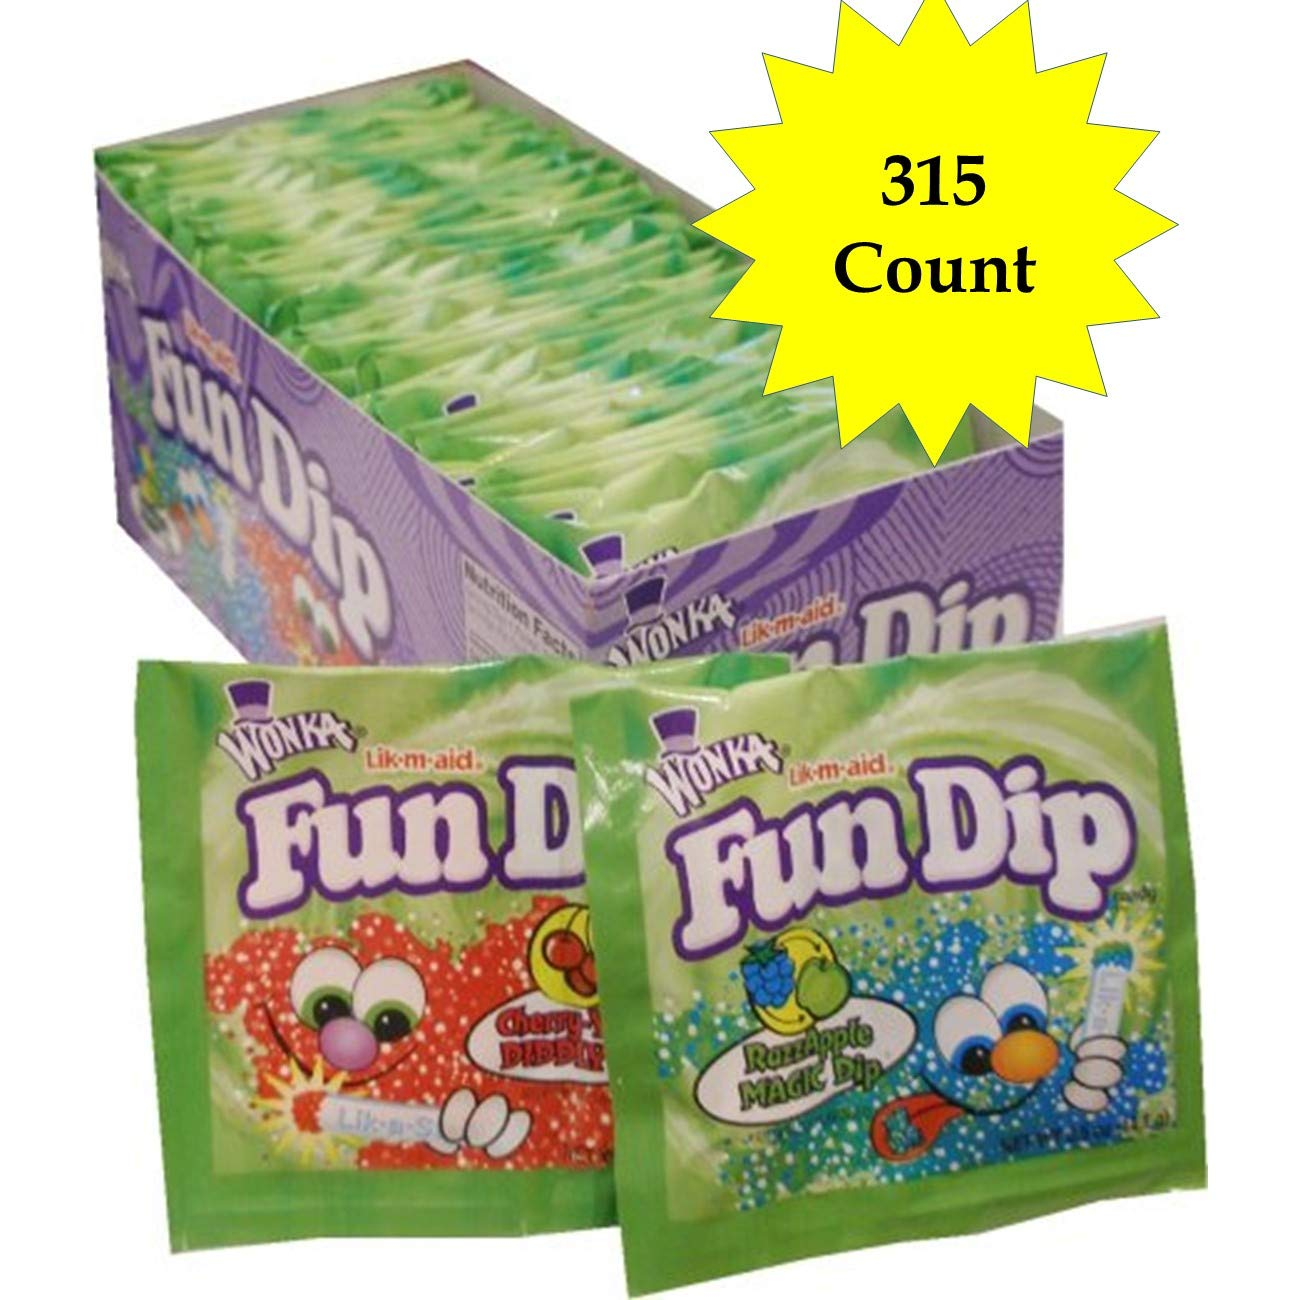 Fun Dip Assorted Flavor Party Pack - 315 Piece Pack, 0.43 oz Packets (315 Piece) by LIK-M-AID Fun Dip